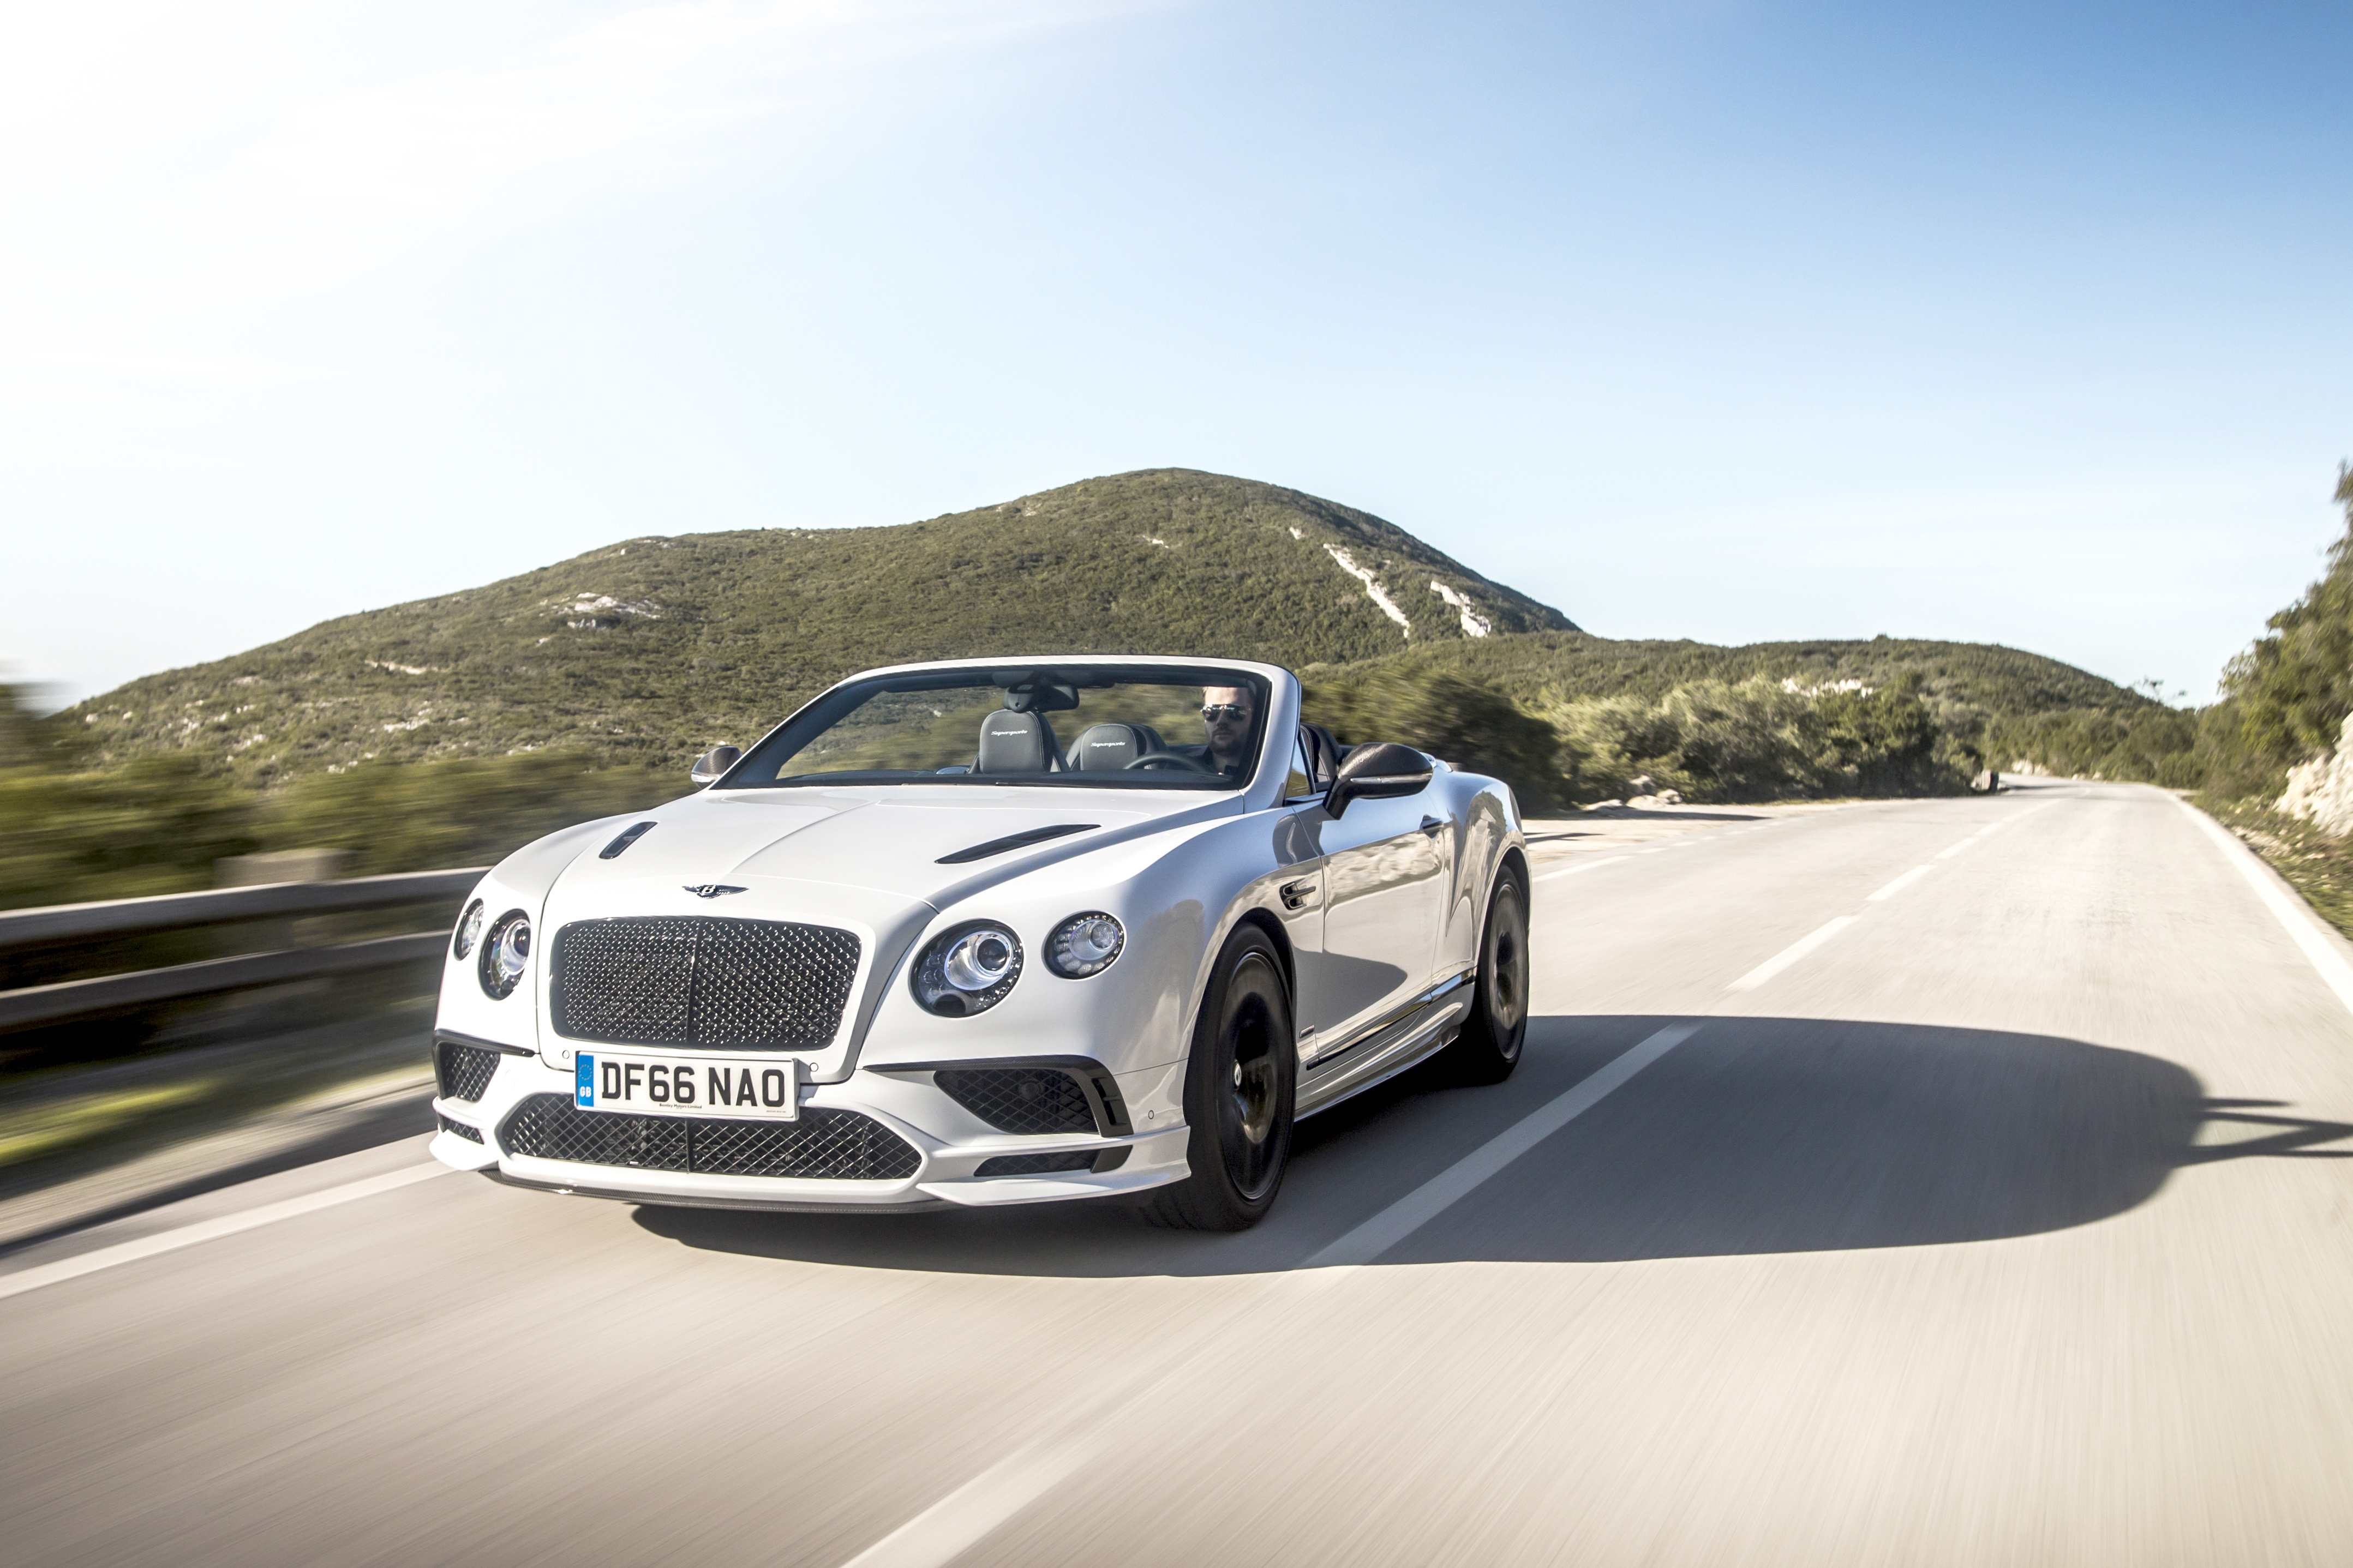 first help luxury between standard beijing ultra mulsanne newsfeatures autotrader to ca extended show starting auto split abounds with bentley launch the is new cars edition at